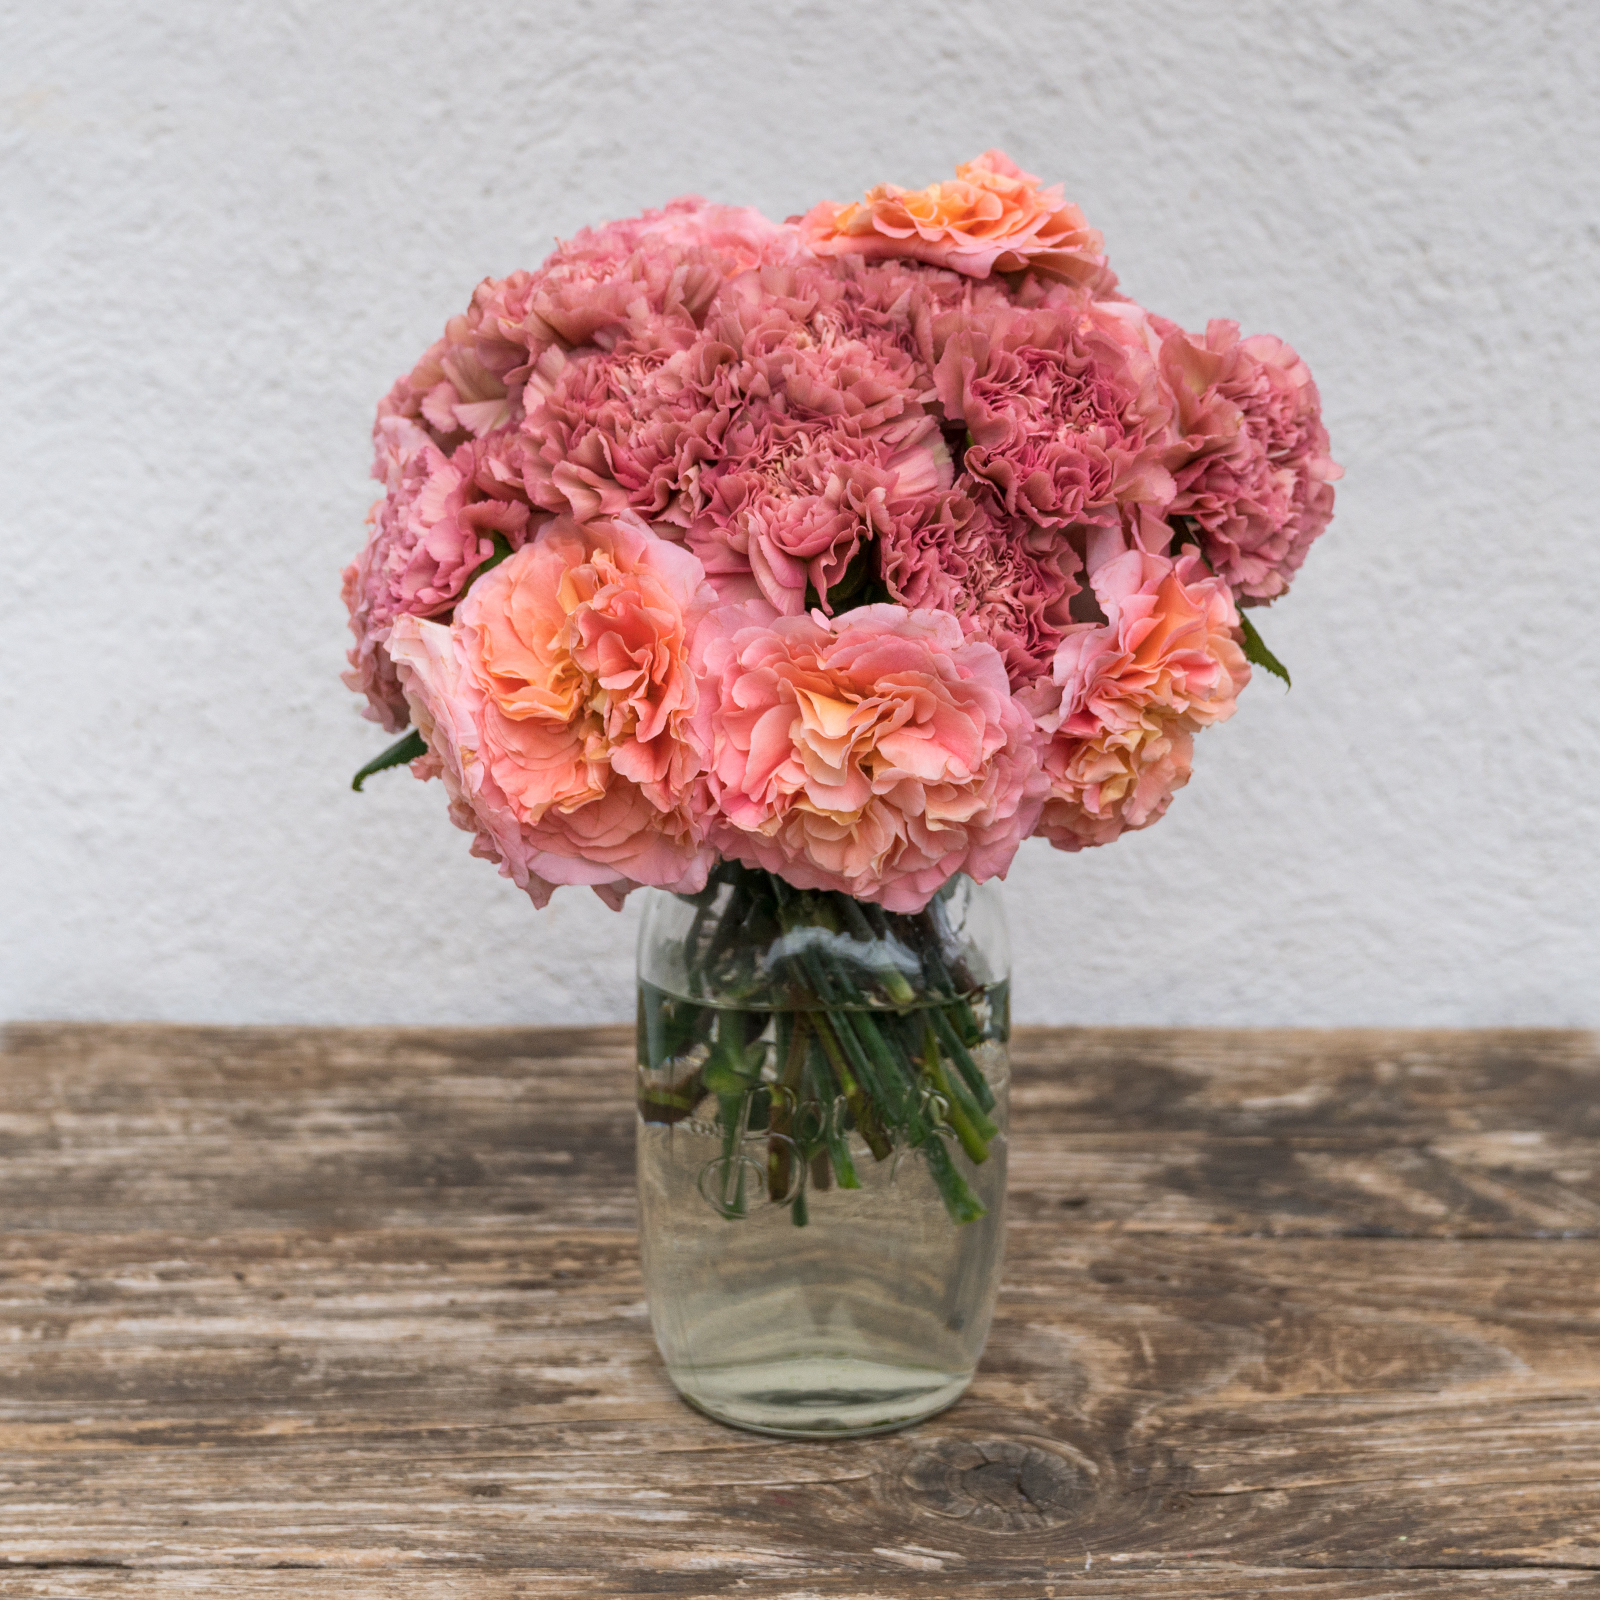 The BouqsCompany Just Launched a New Line of Carnations You'll Actually Like